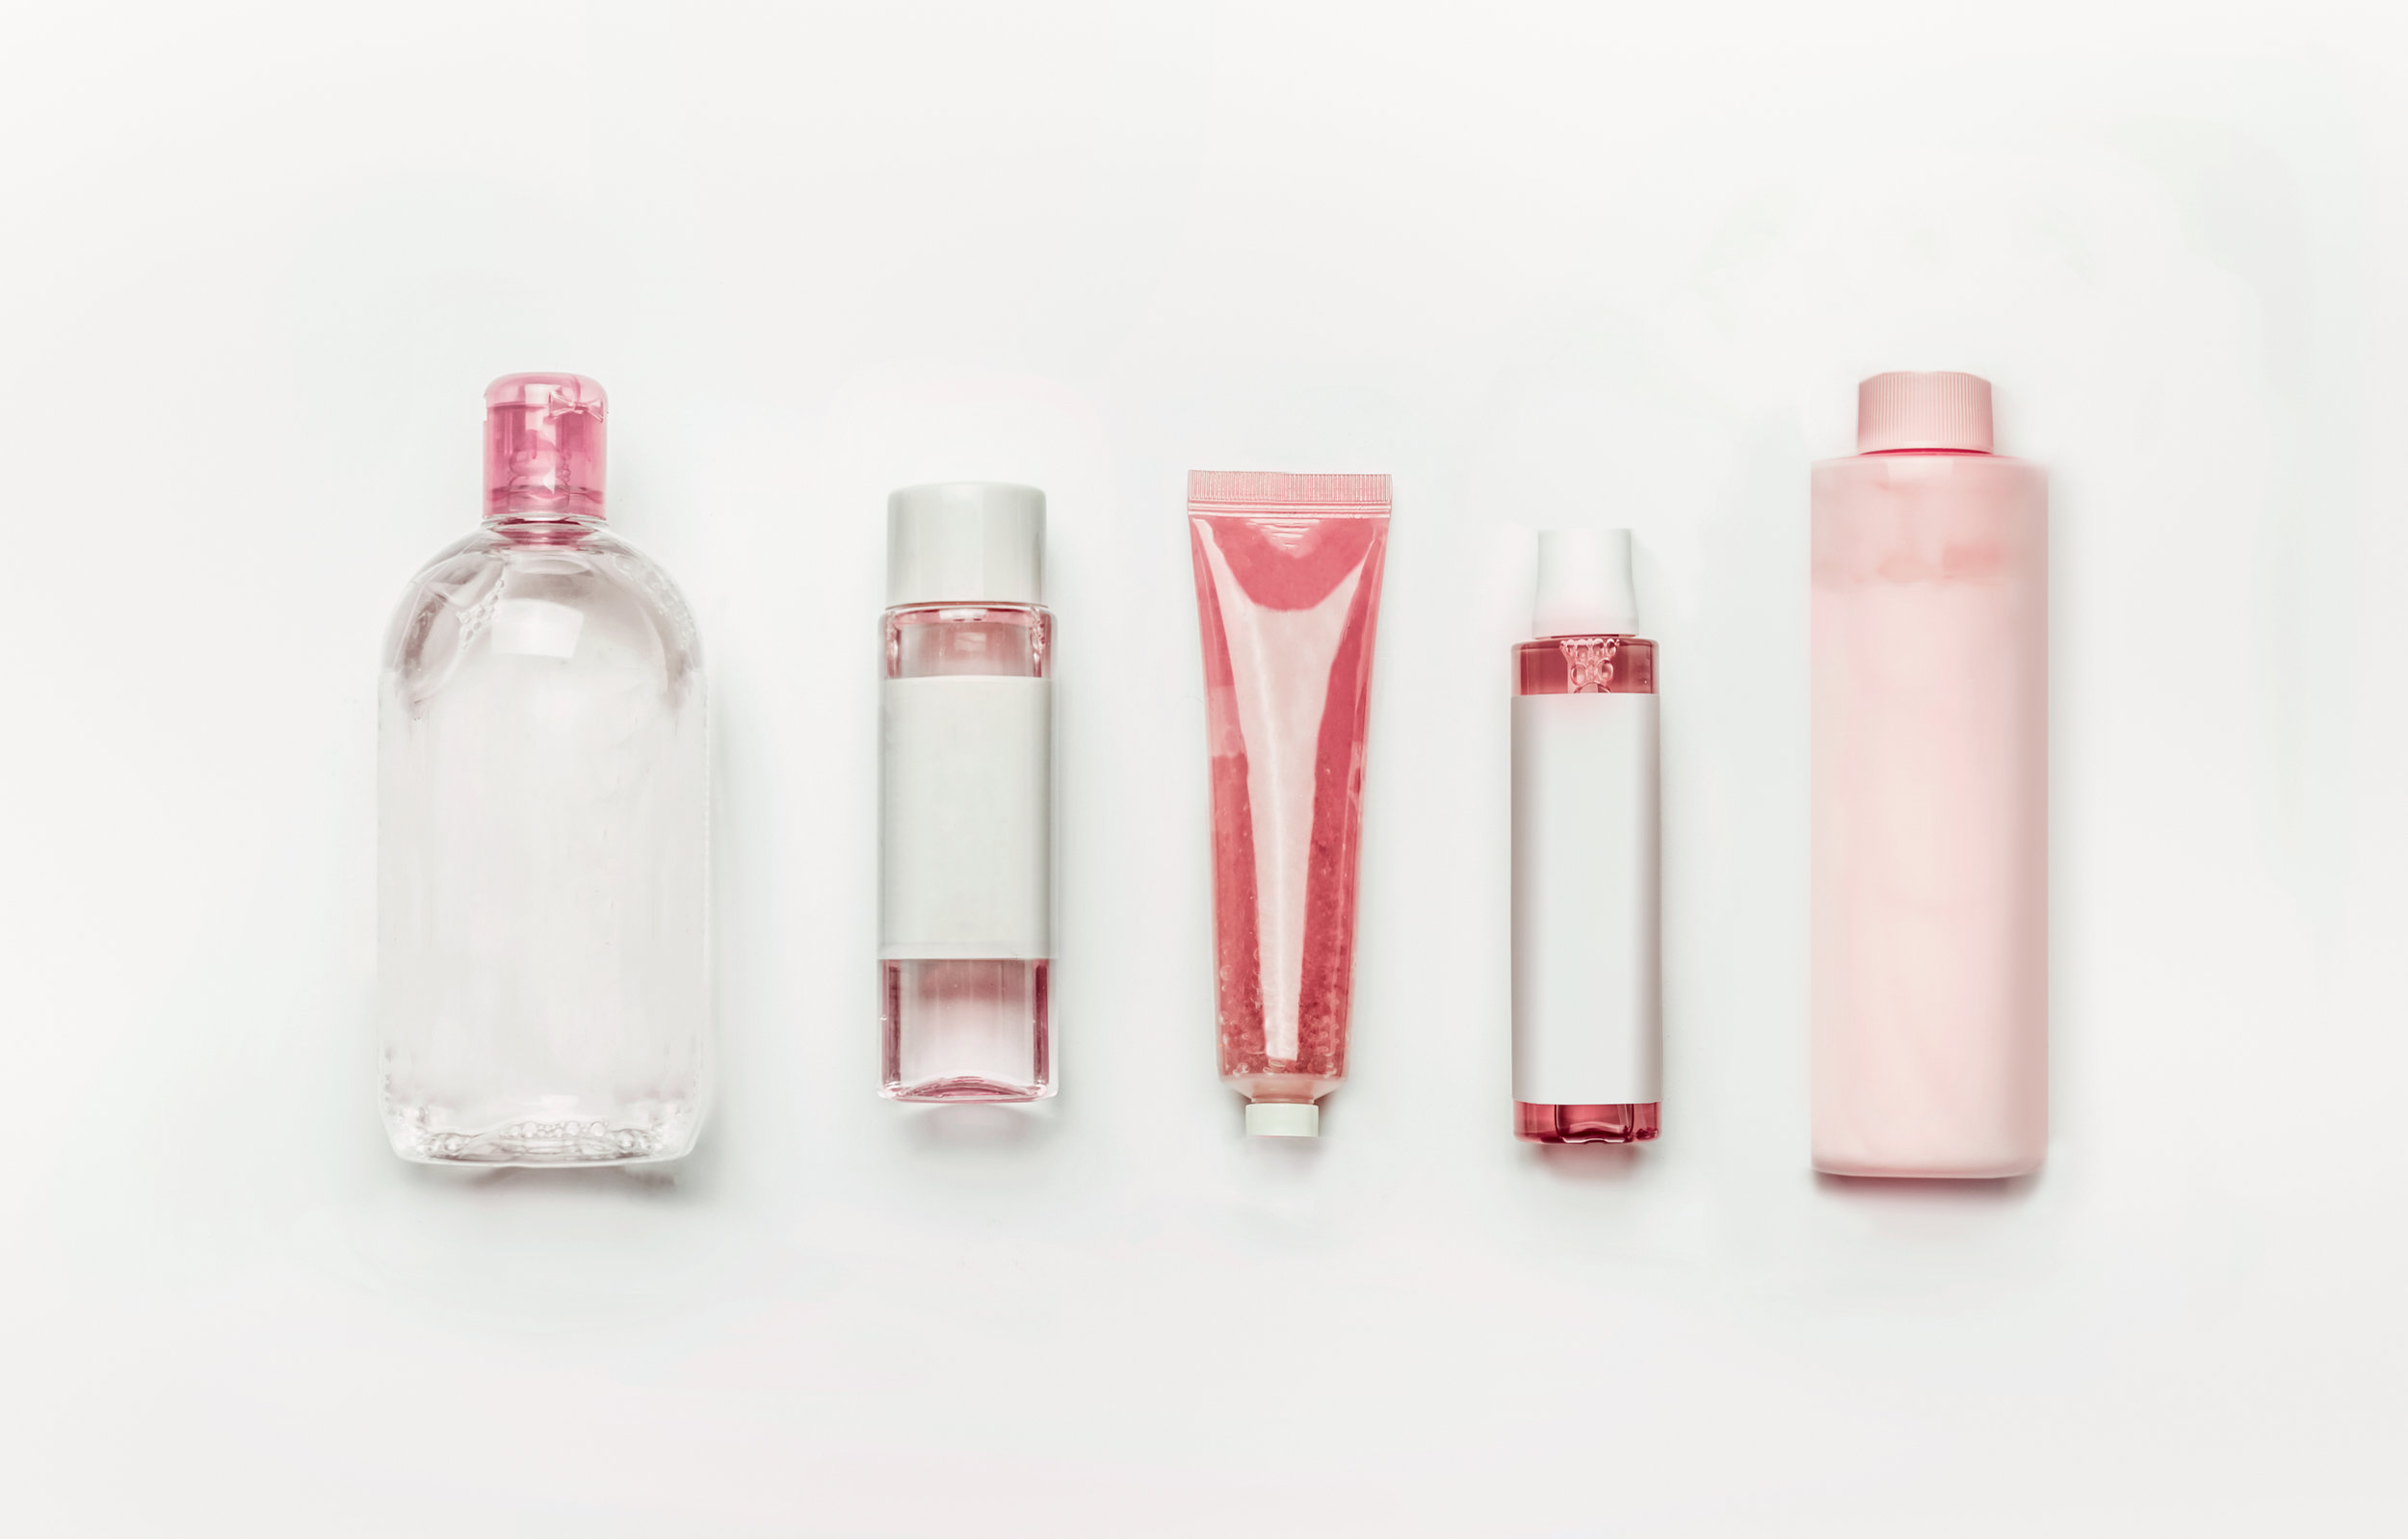 stock-photo-pink-natural-cosmetic-products-gel-lotion-serum-micellar-water-and-toner-bottles-and-tubes-1074149759.jpg